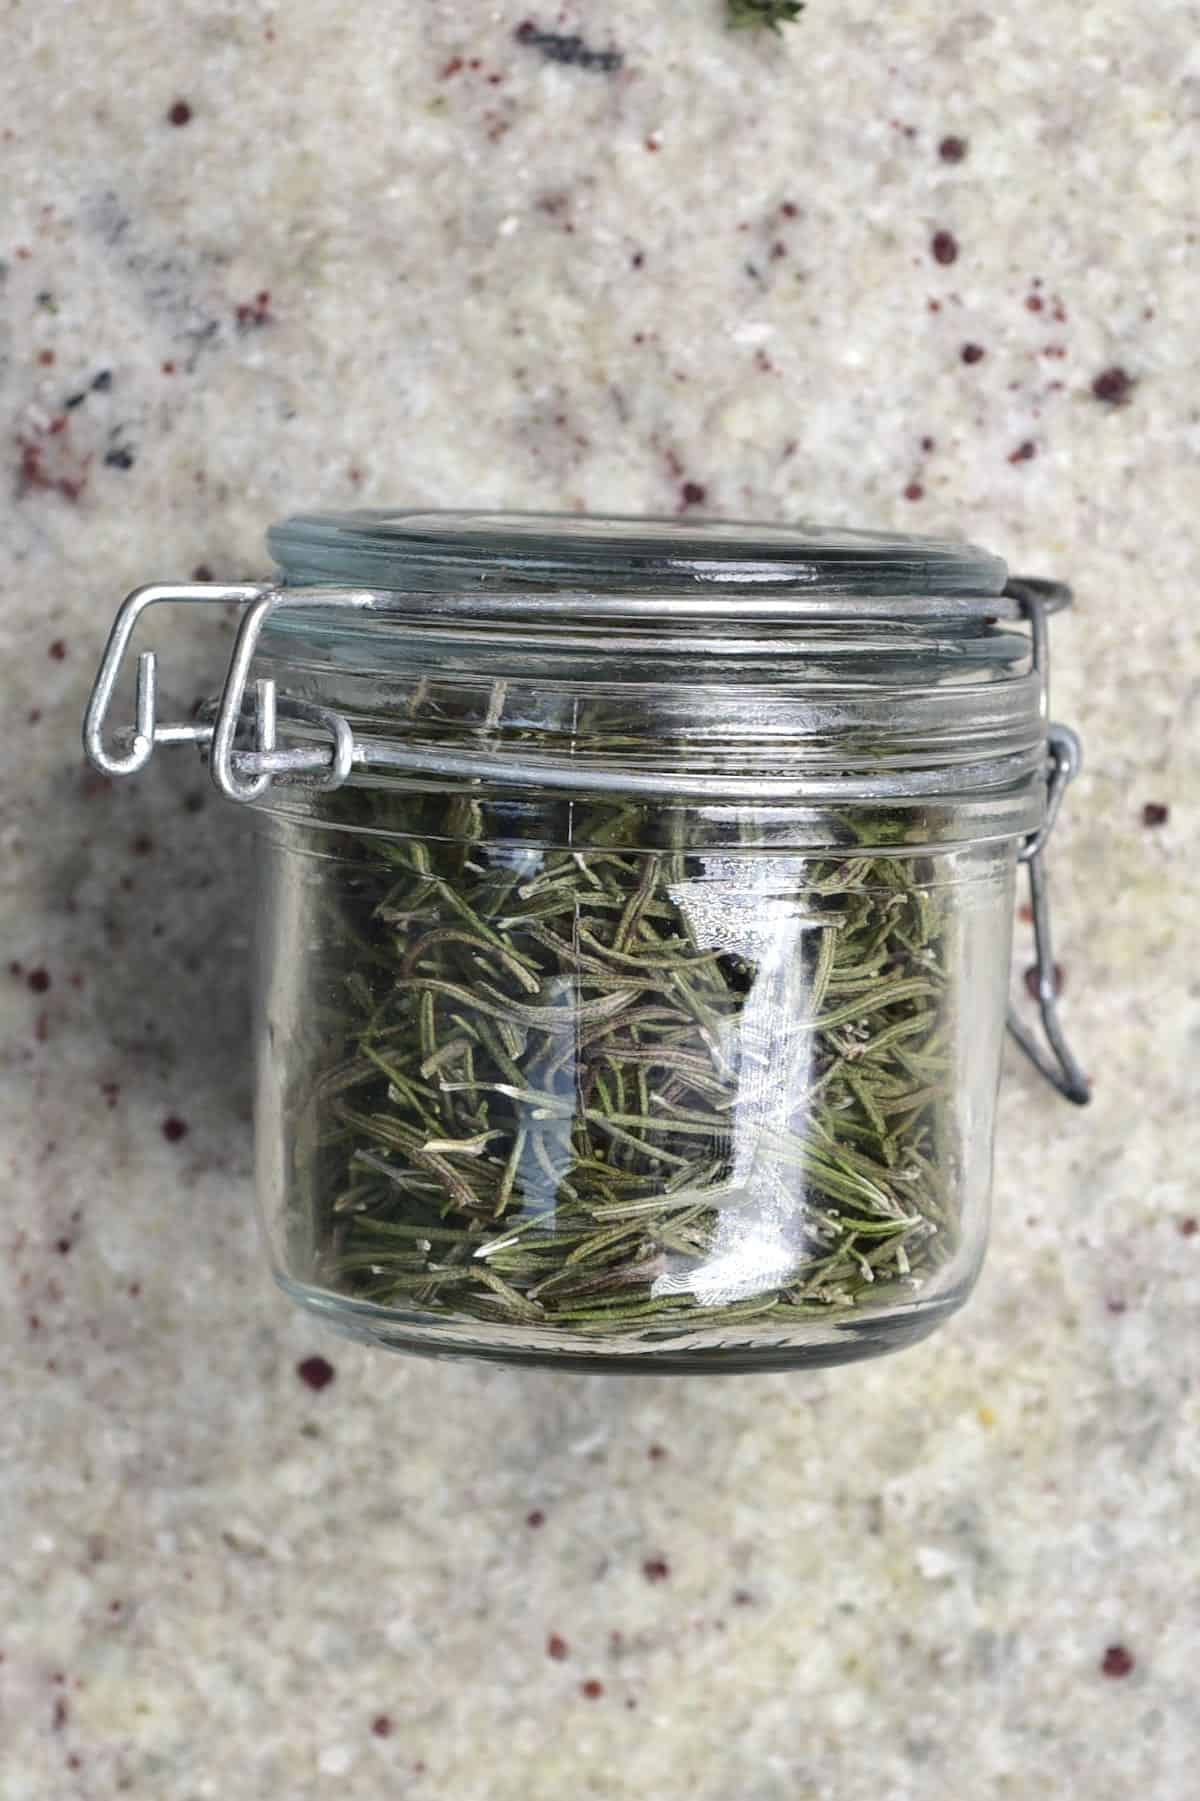 A jar with dried rosemary